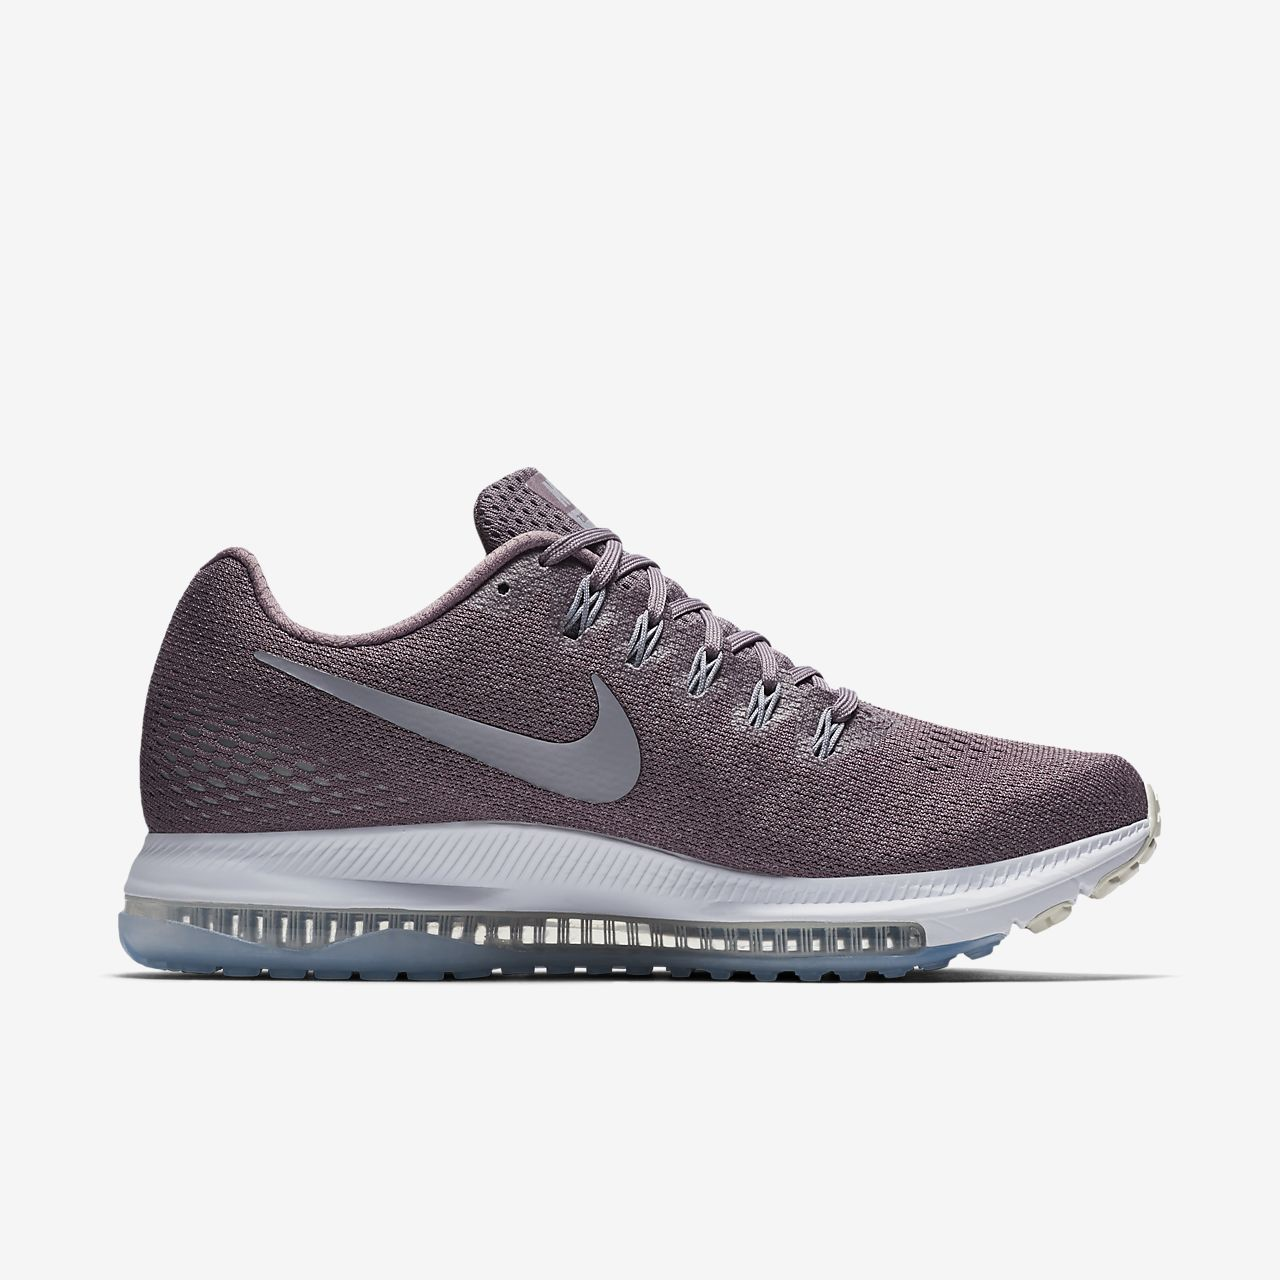 Nike Zoom All Out Low Women's Running Shoes Size 6.5 TAUPE GREY/PROVENCE PURPLE